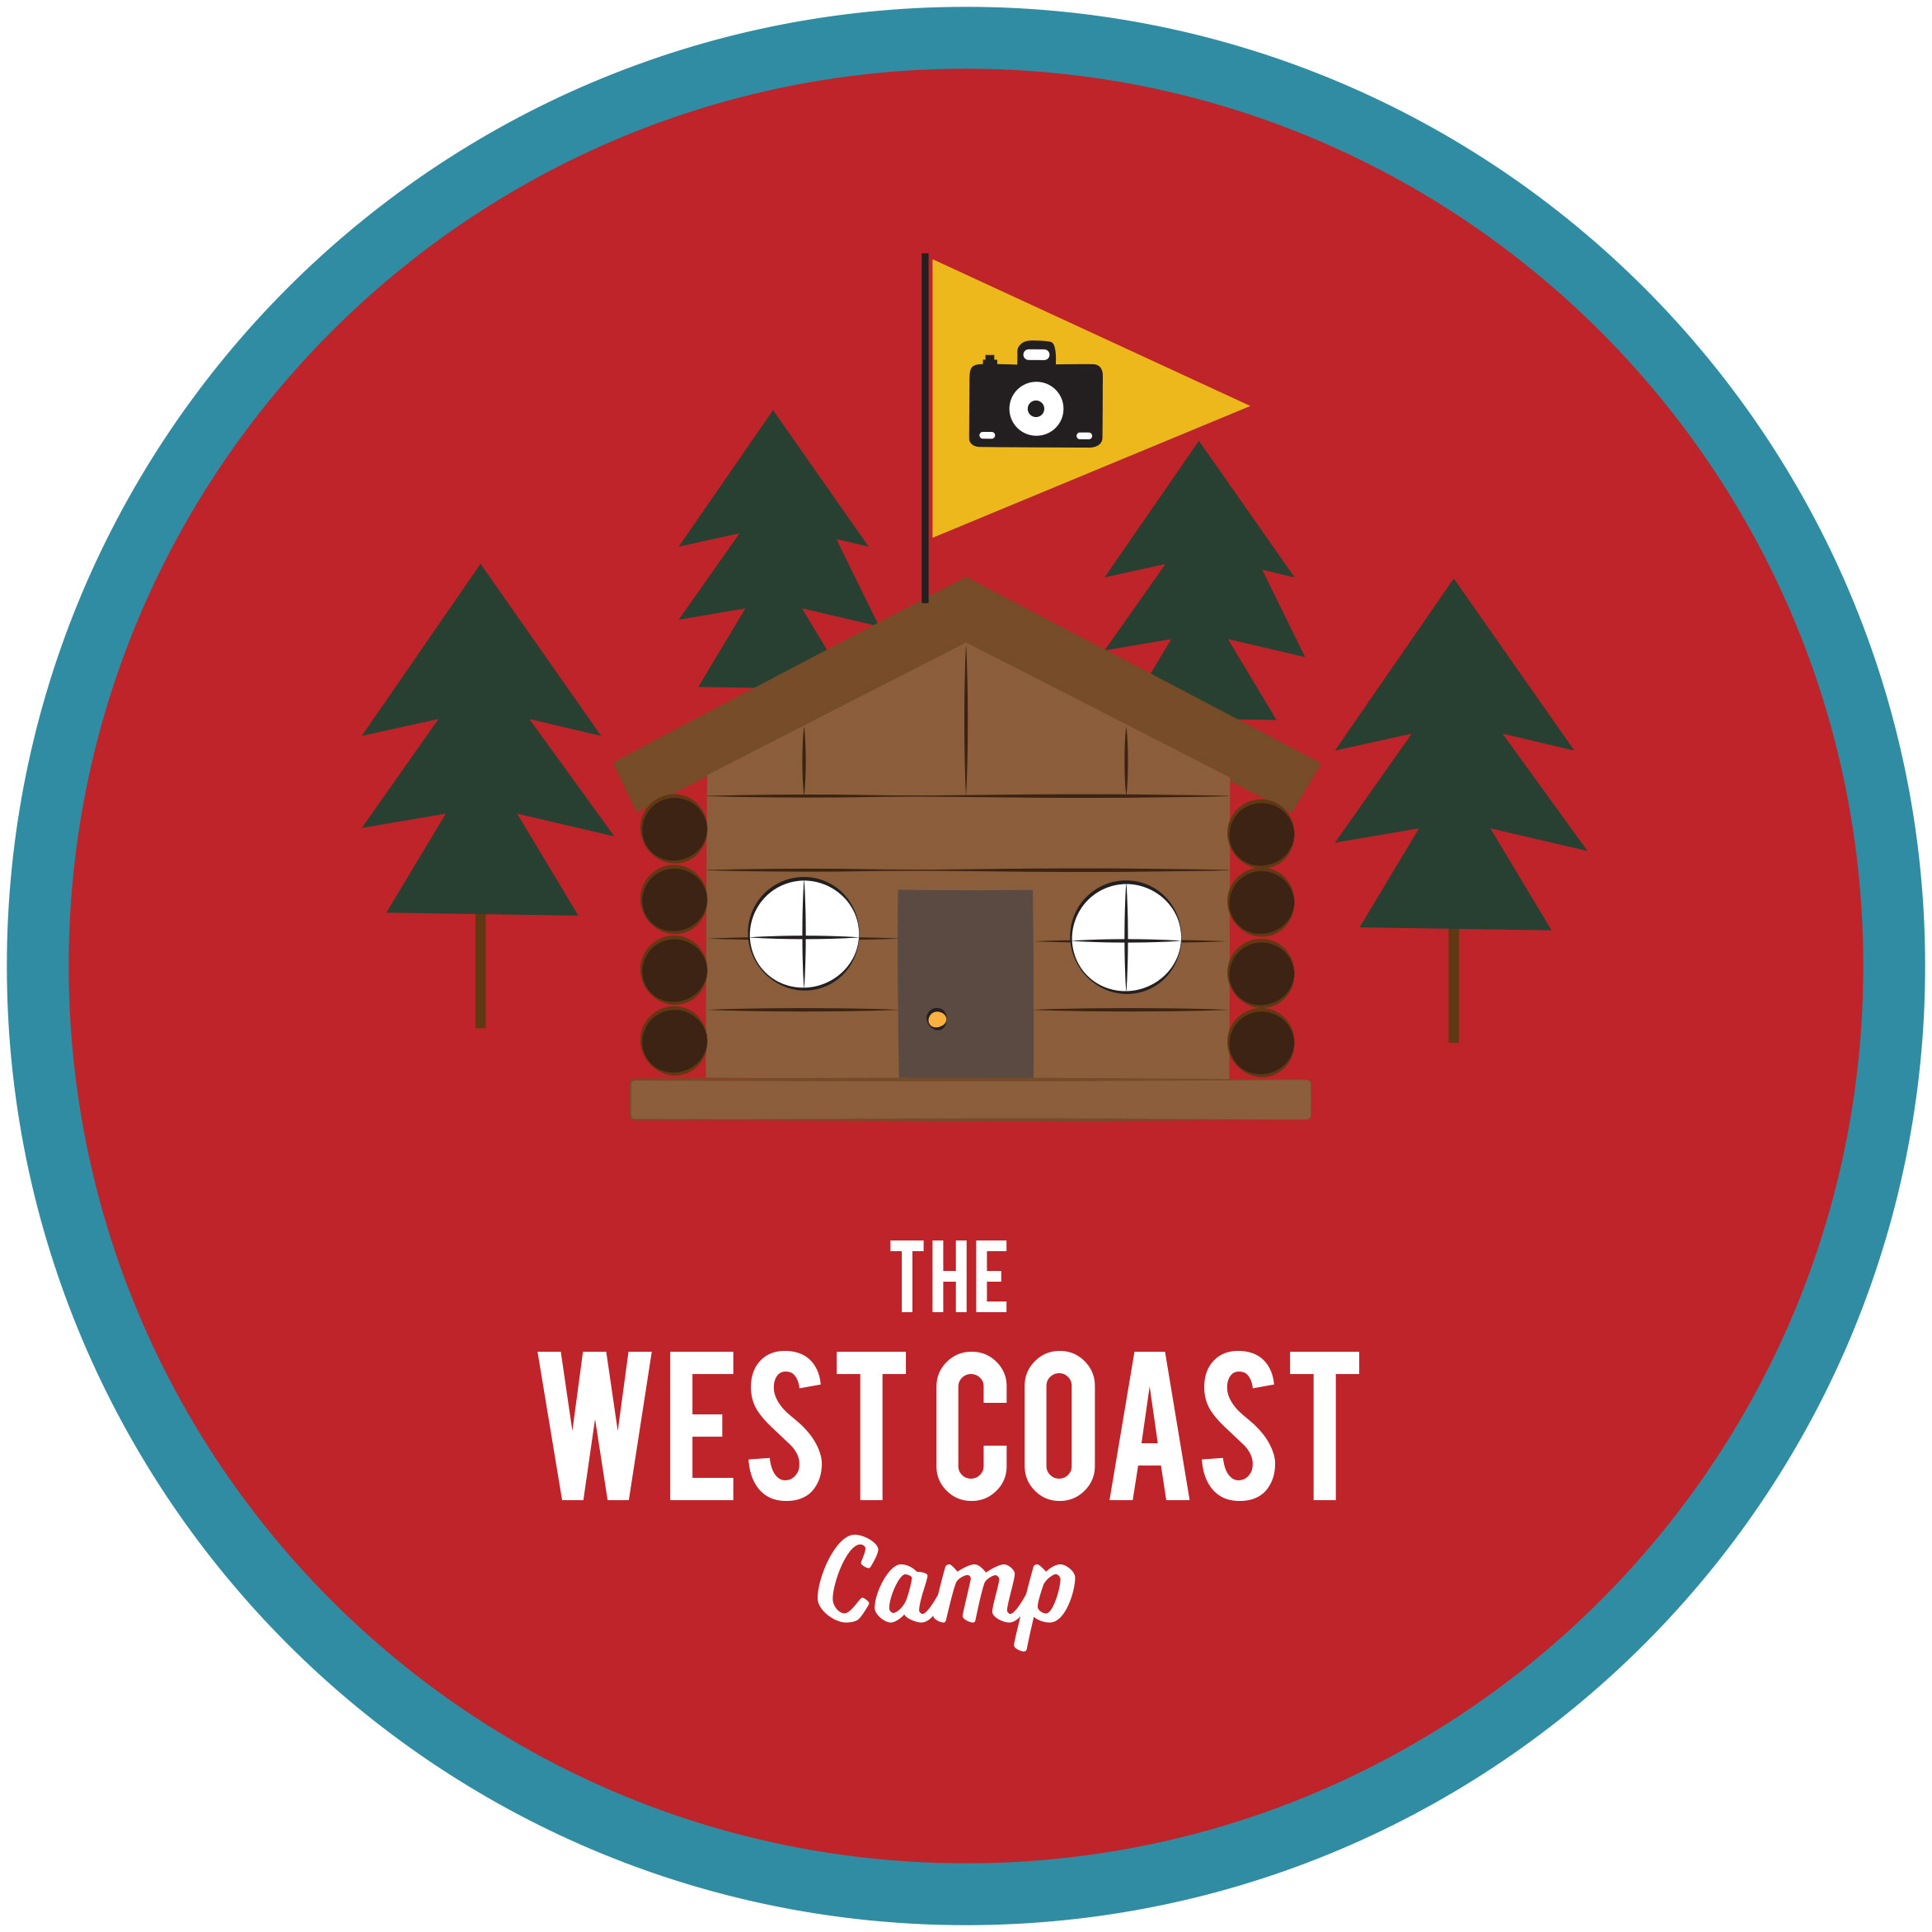 CampCollectiveButtons+Badges_Westcoast.jpg